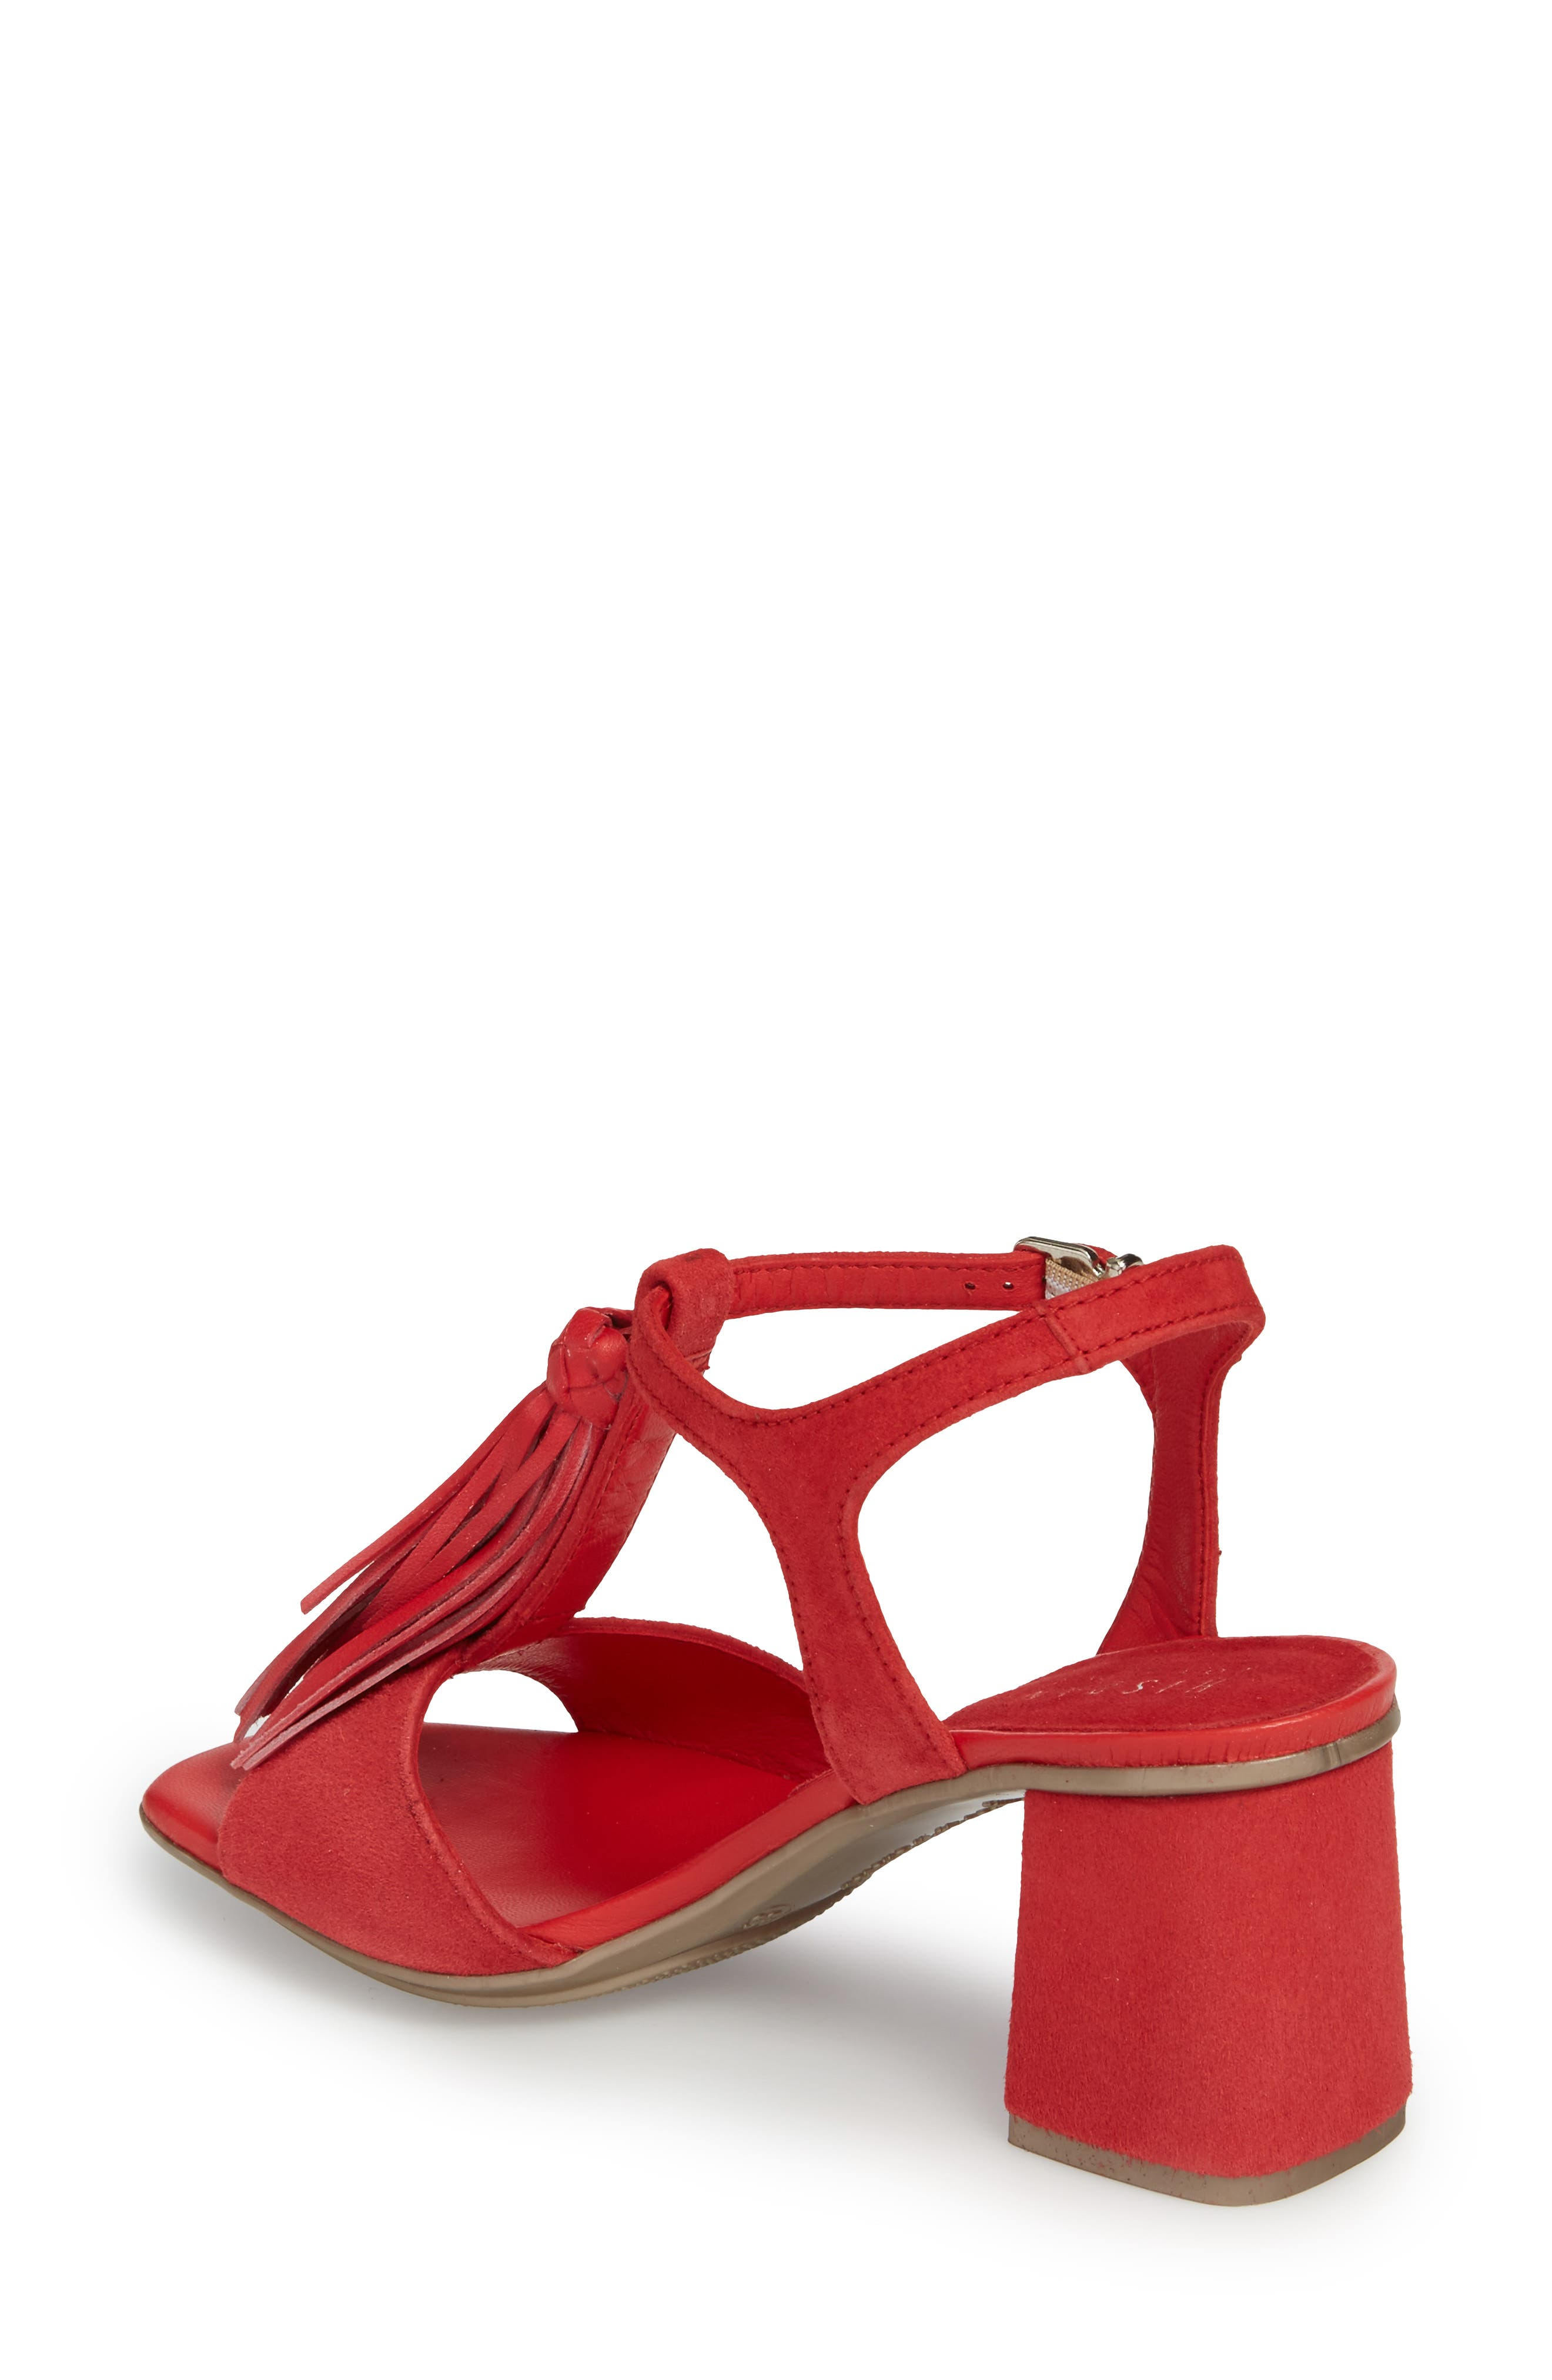 Schulyer T-Strap Sandal,                             Alternate thumbnail 2, color,                             Rubi Leather